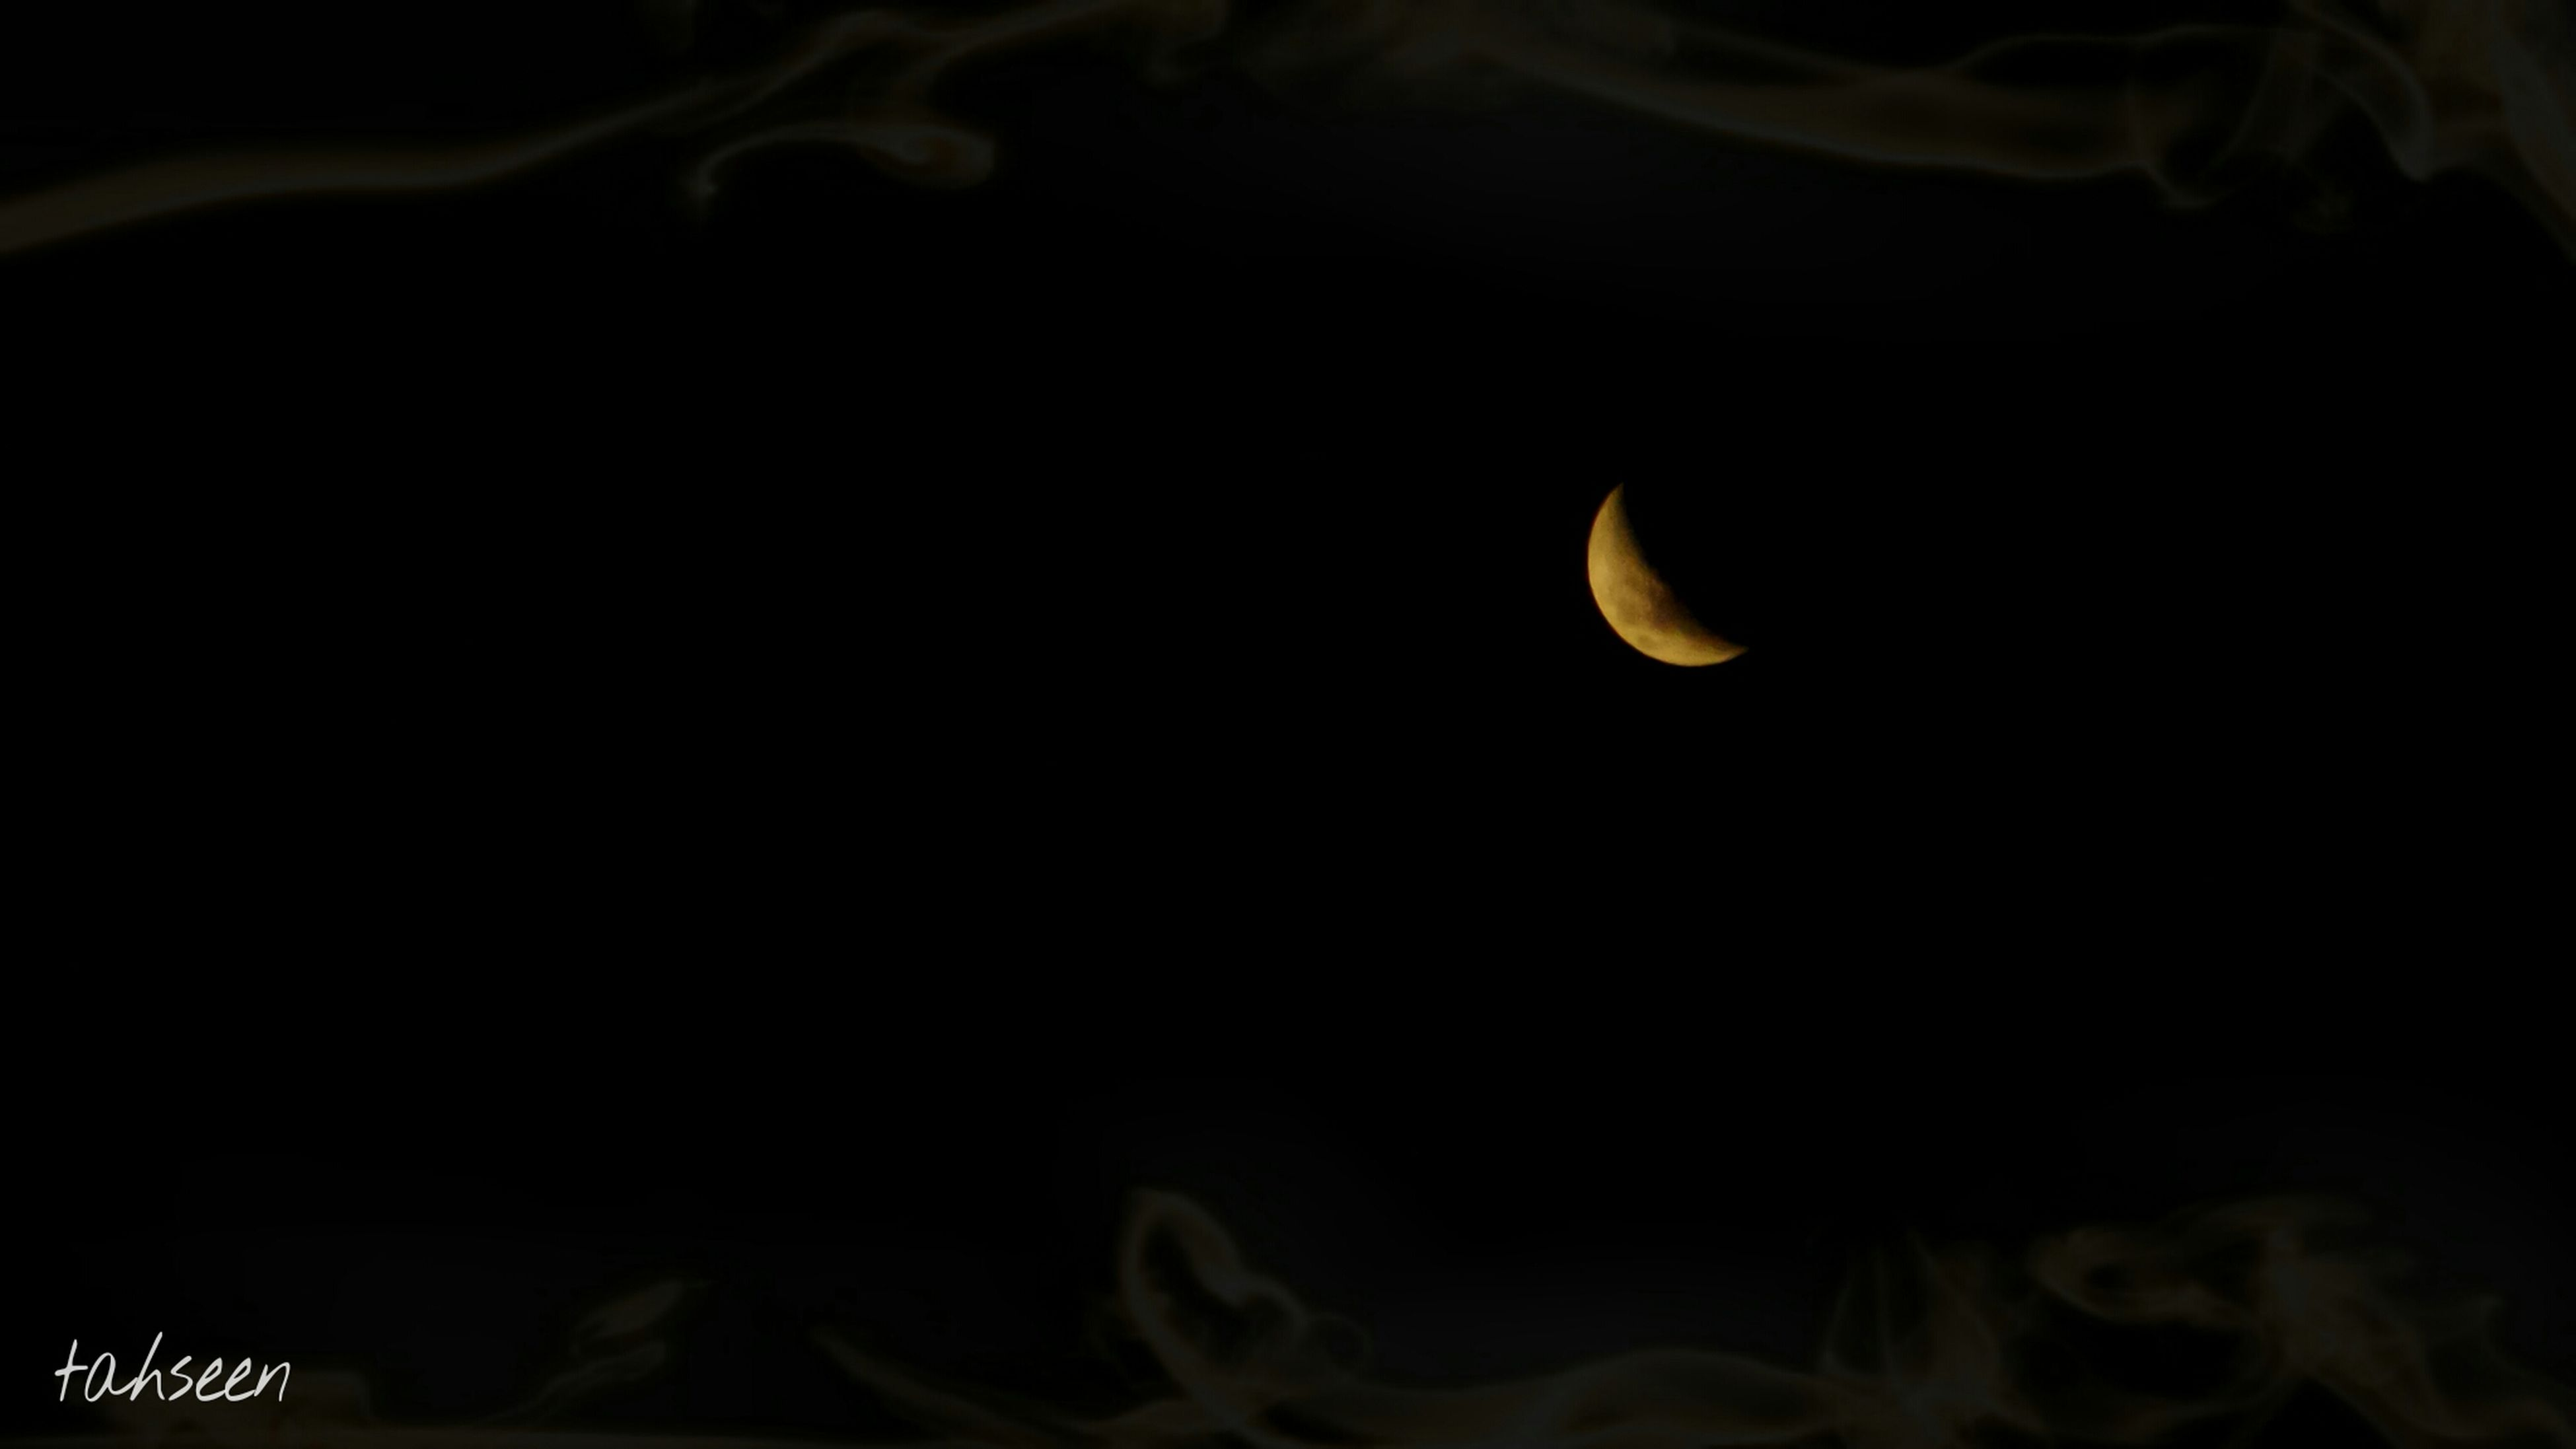 night, moon, copy space, dark, black background, illuminated, full moon, astronomy, beauty in nature, nature, low angle view, clear sky, moonlight, tranquility, planetary moon, silhouette, scenics, close-up, sky, tranquil scene